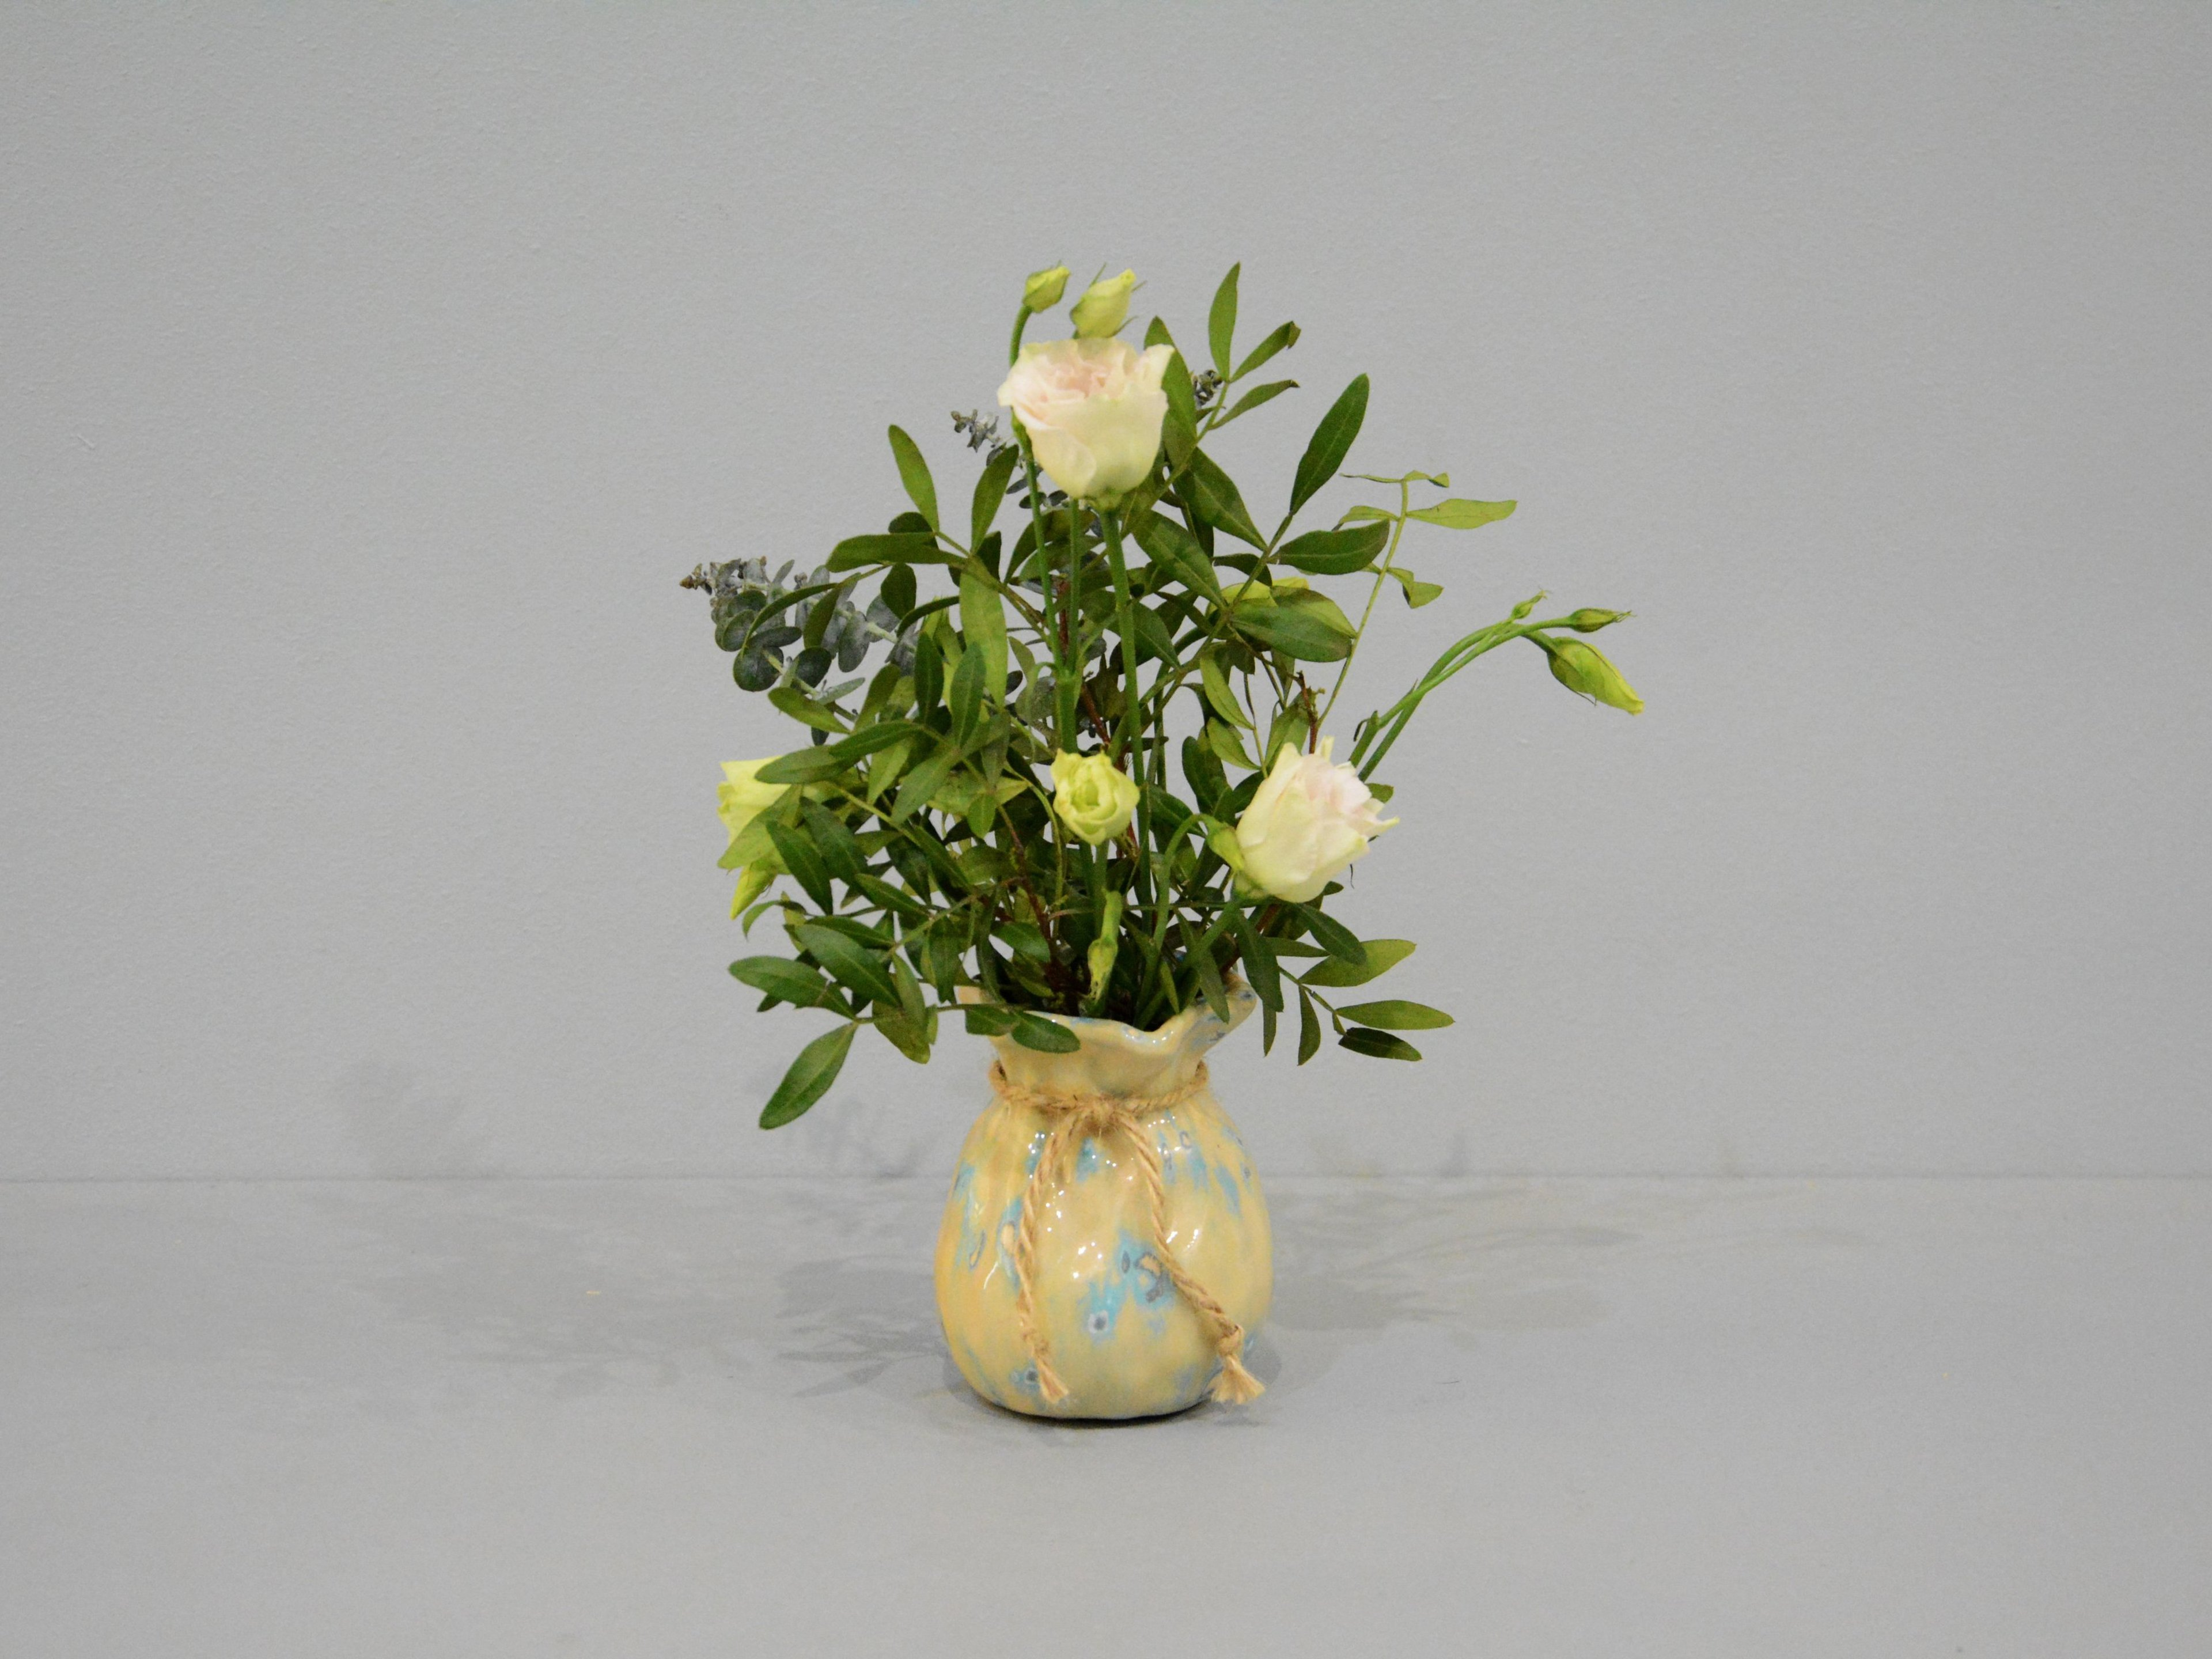 Small Vase or flowers «Beige Bagful», height - 9 cm, color - beige. Photo 1413-3840-2880.